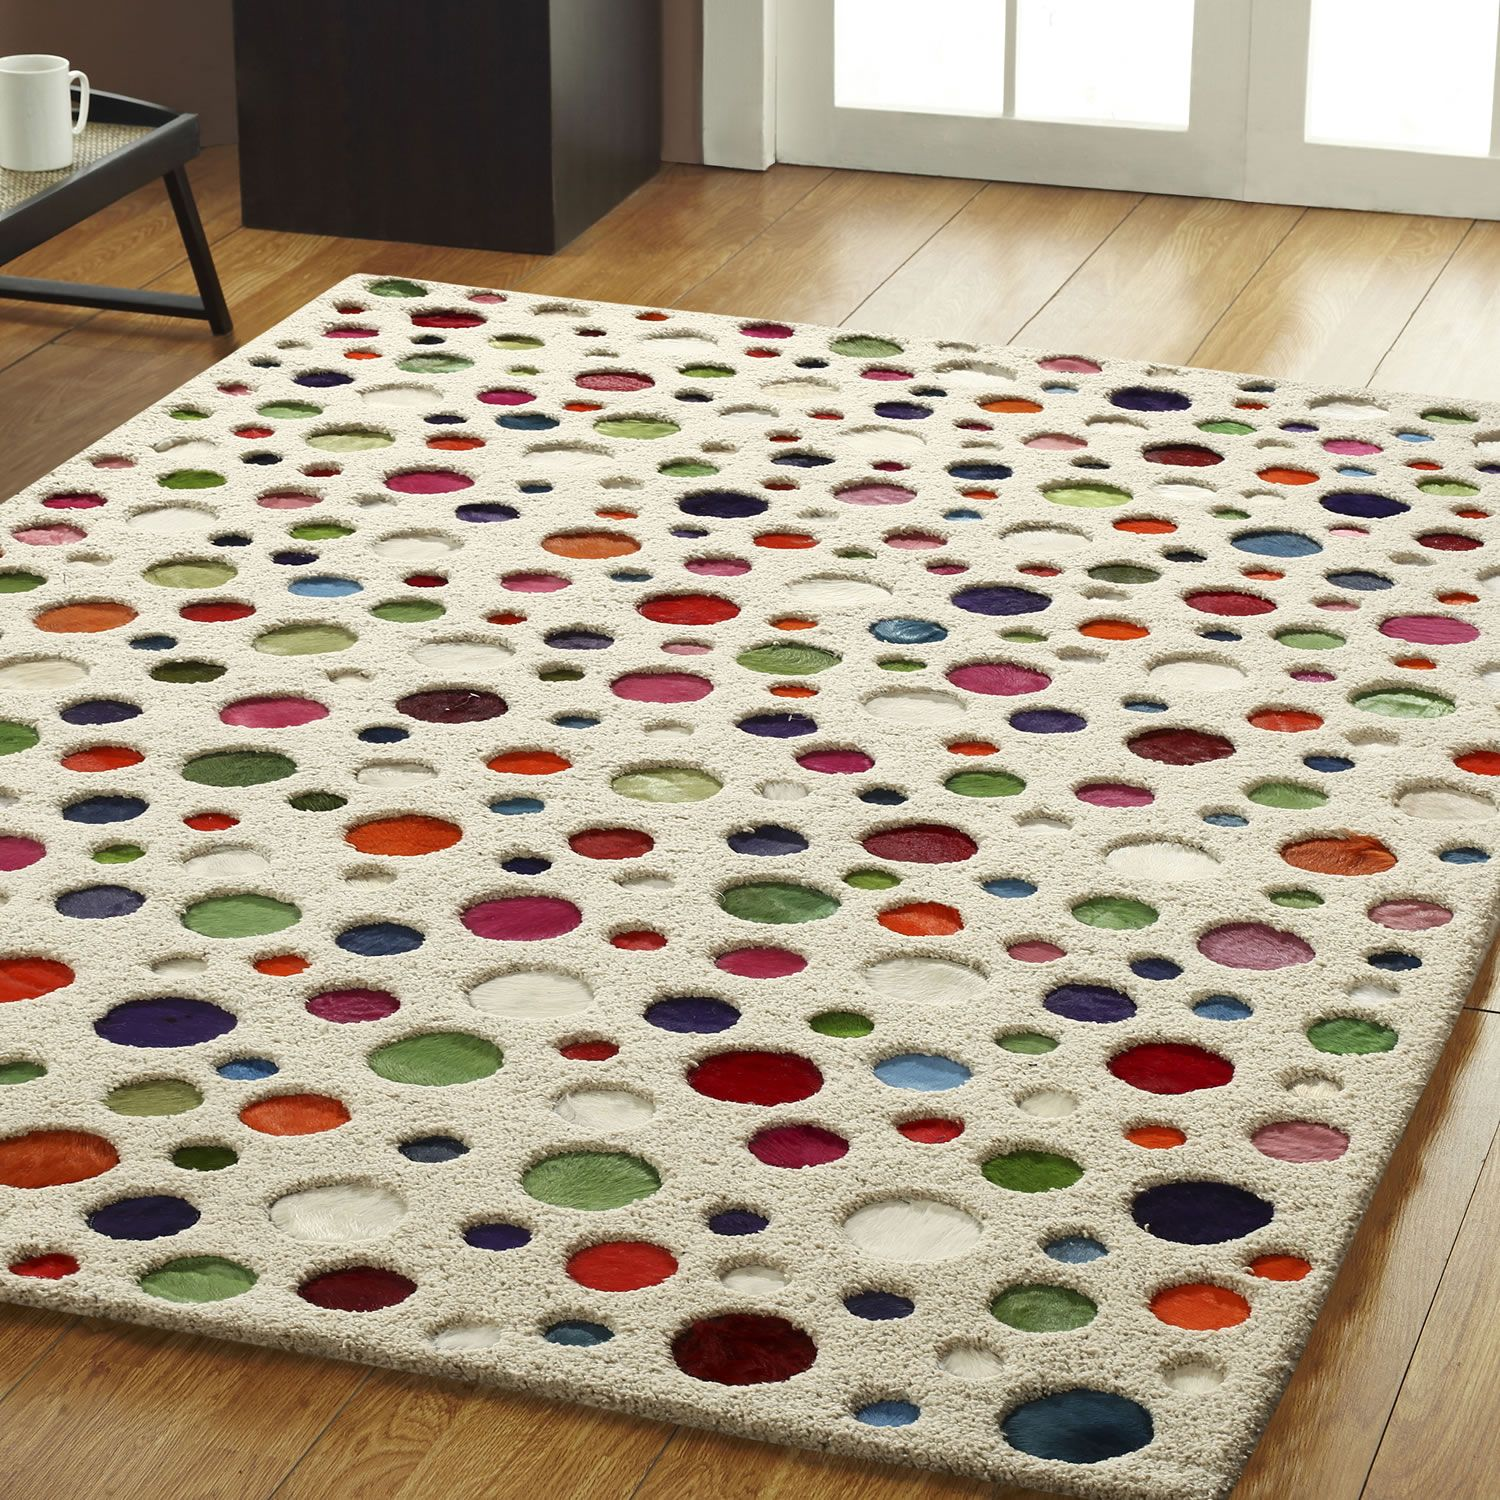 A fun and colourful rug with dyed, cow hide polka dots in